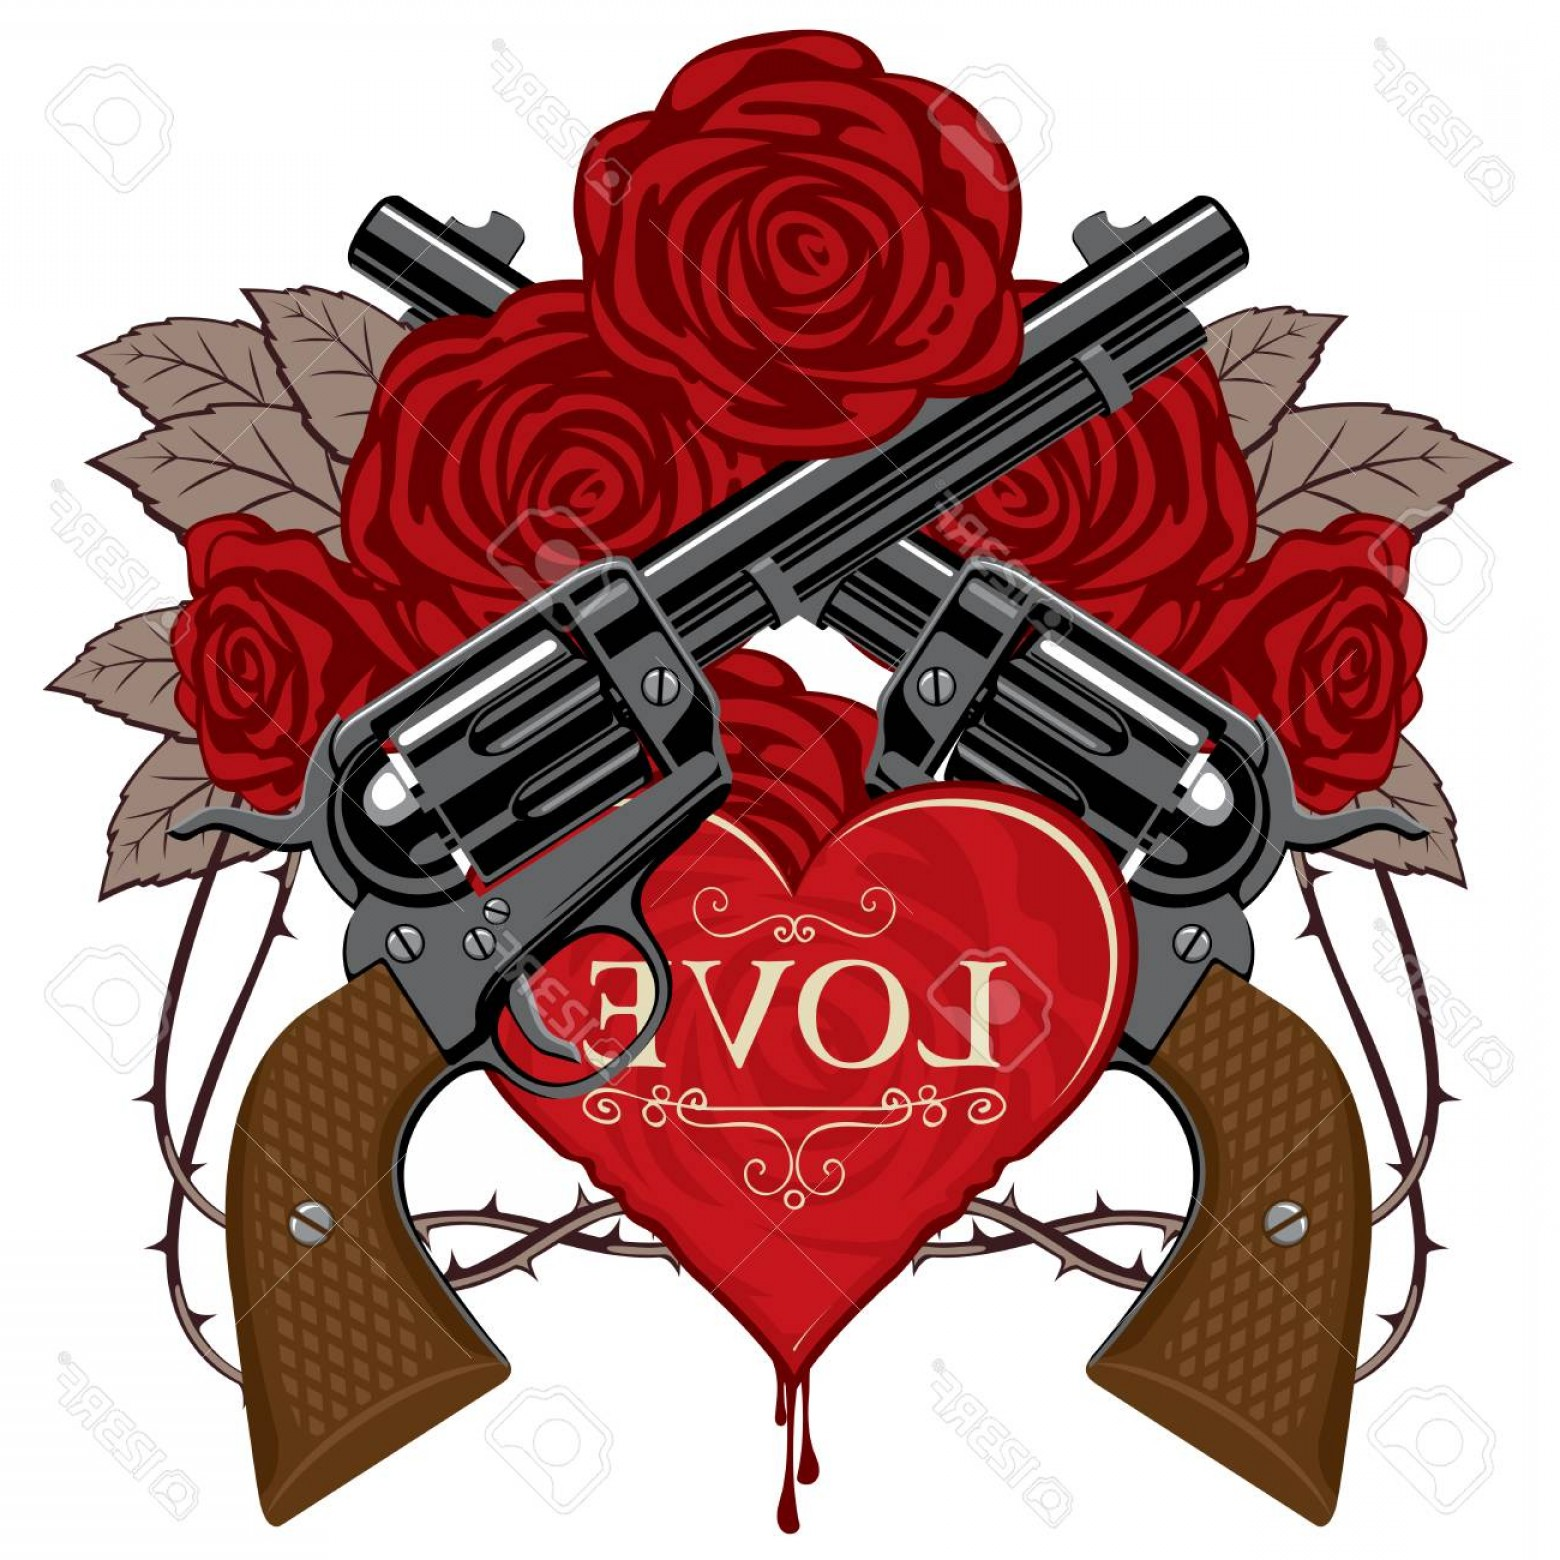 Detroit Red Wings Vector Art: Photostock Vector Vector Banner On Theme Of Love And Death Template Design Illustration With Two Old Crossed Revolvers